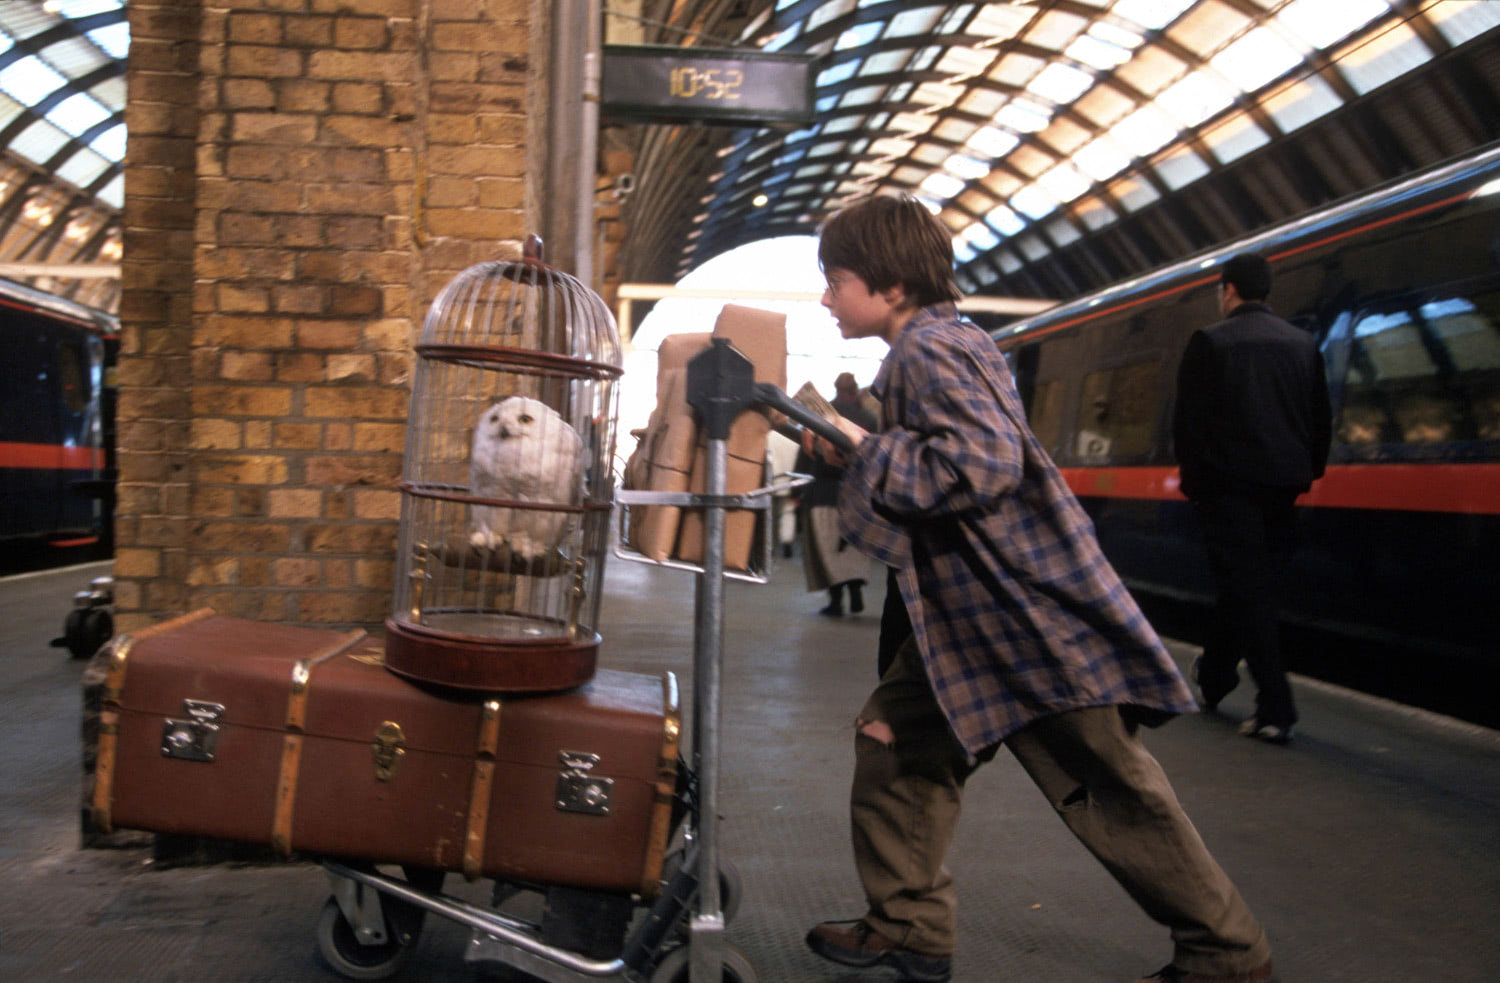 Harry pushes his trunk at King's Cross